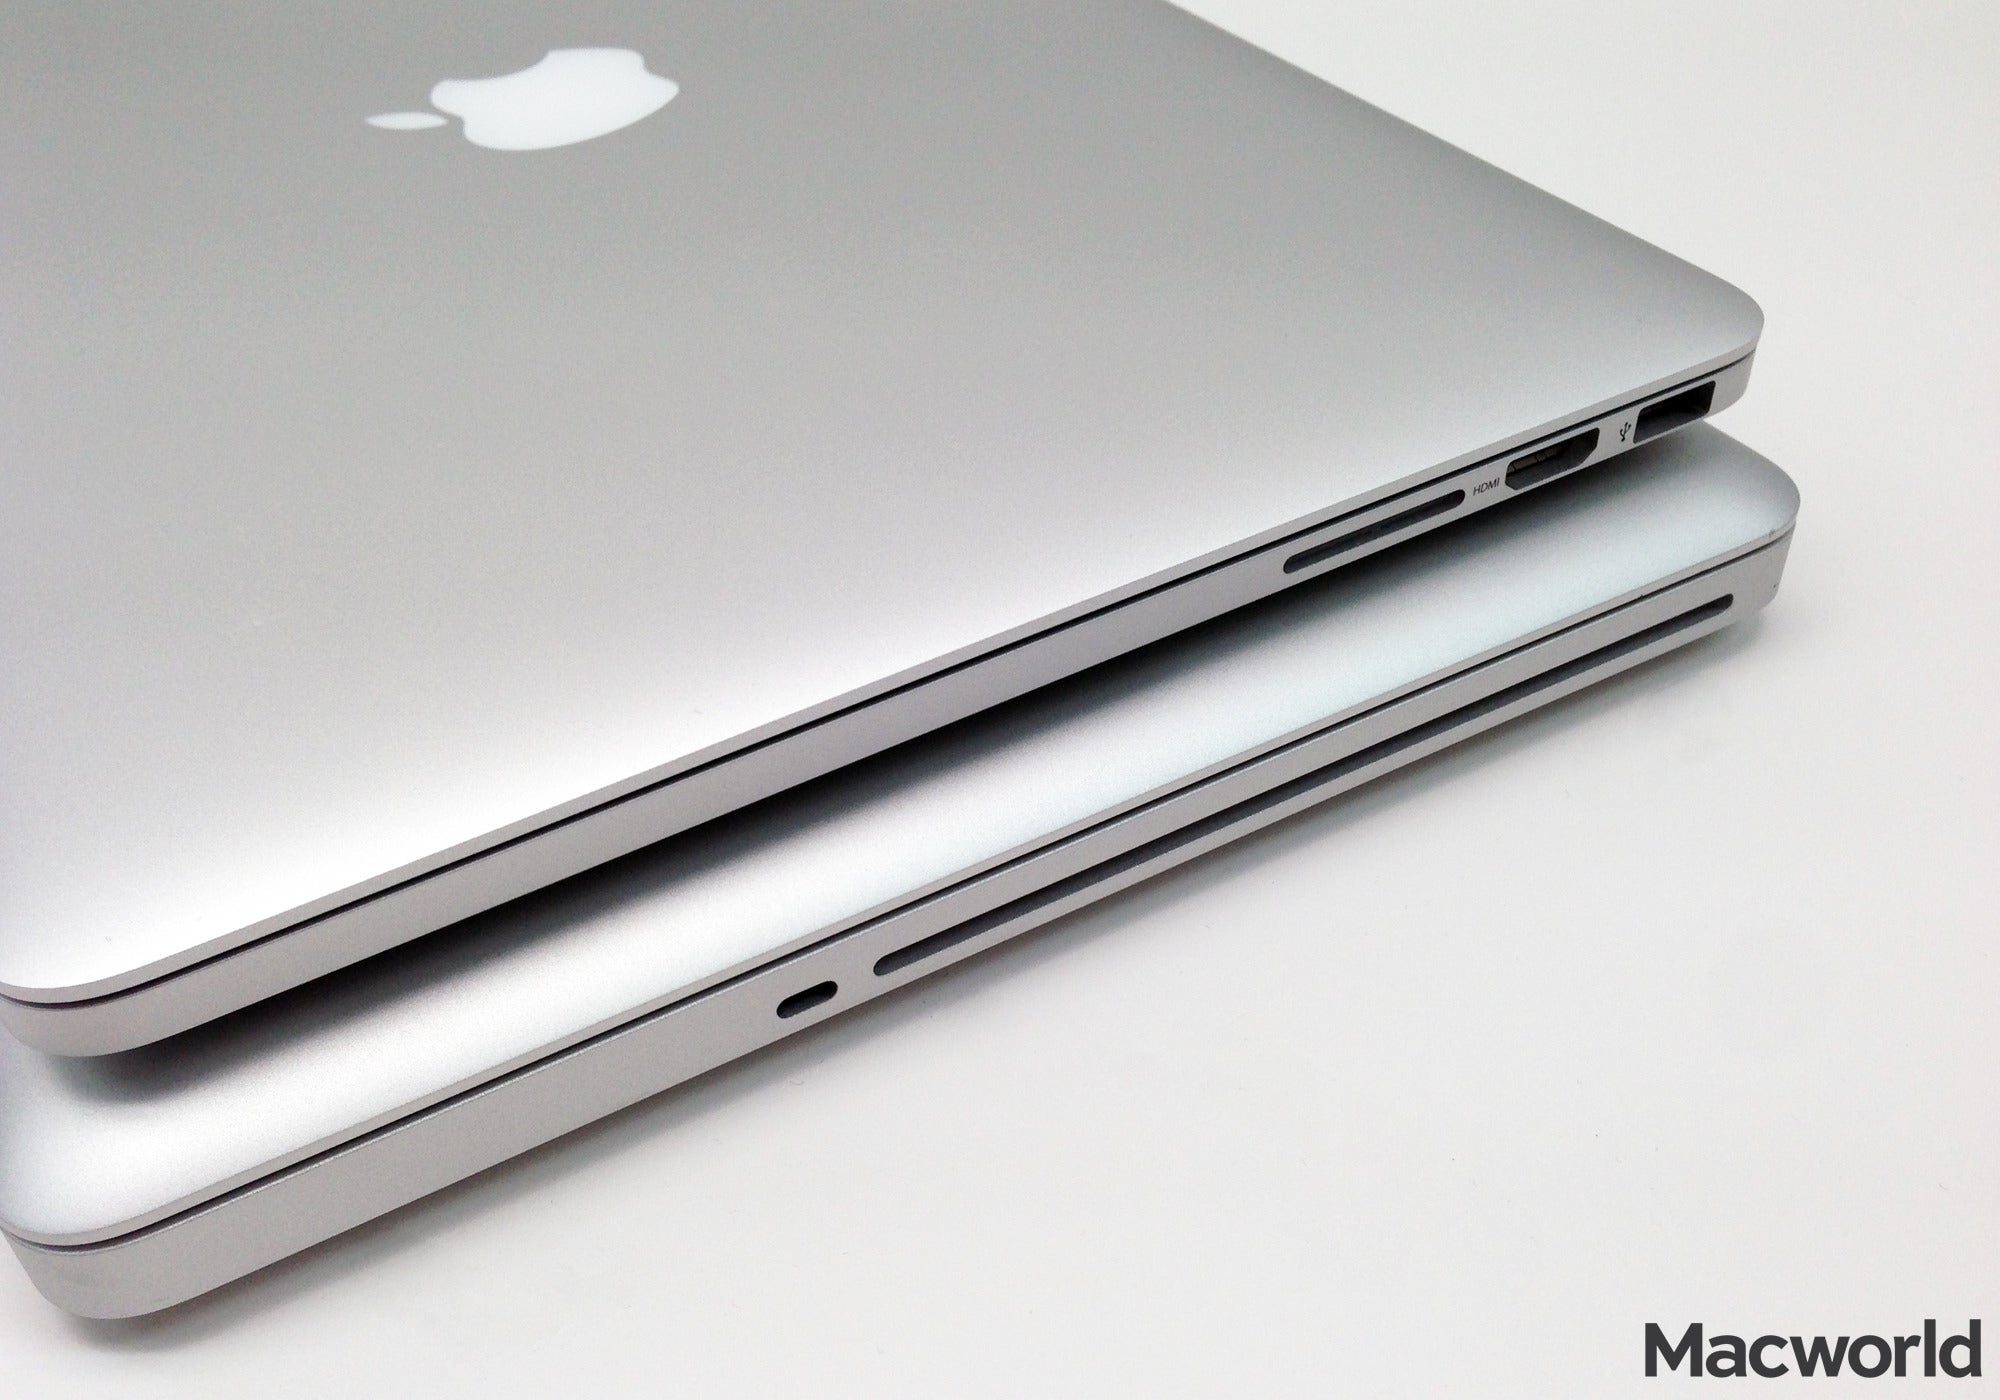 Macbook pro retina cd slot gambling age for hard rock casino in hollywood fl